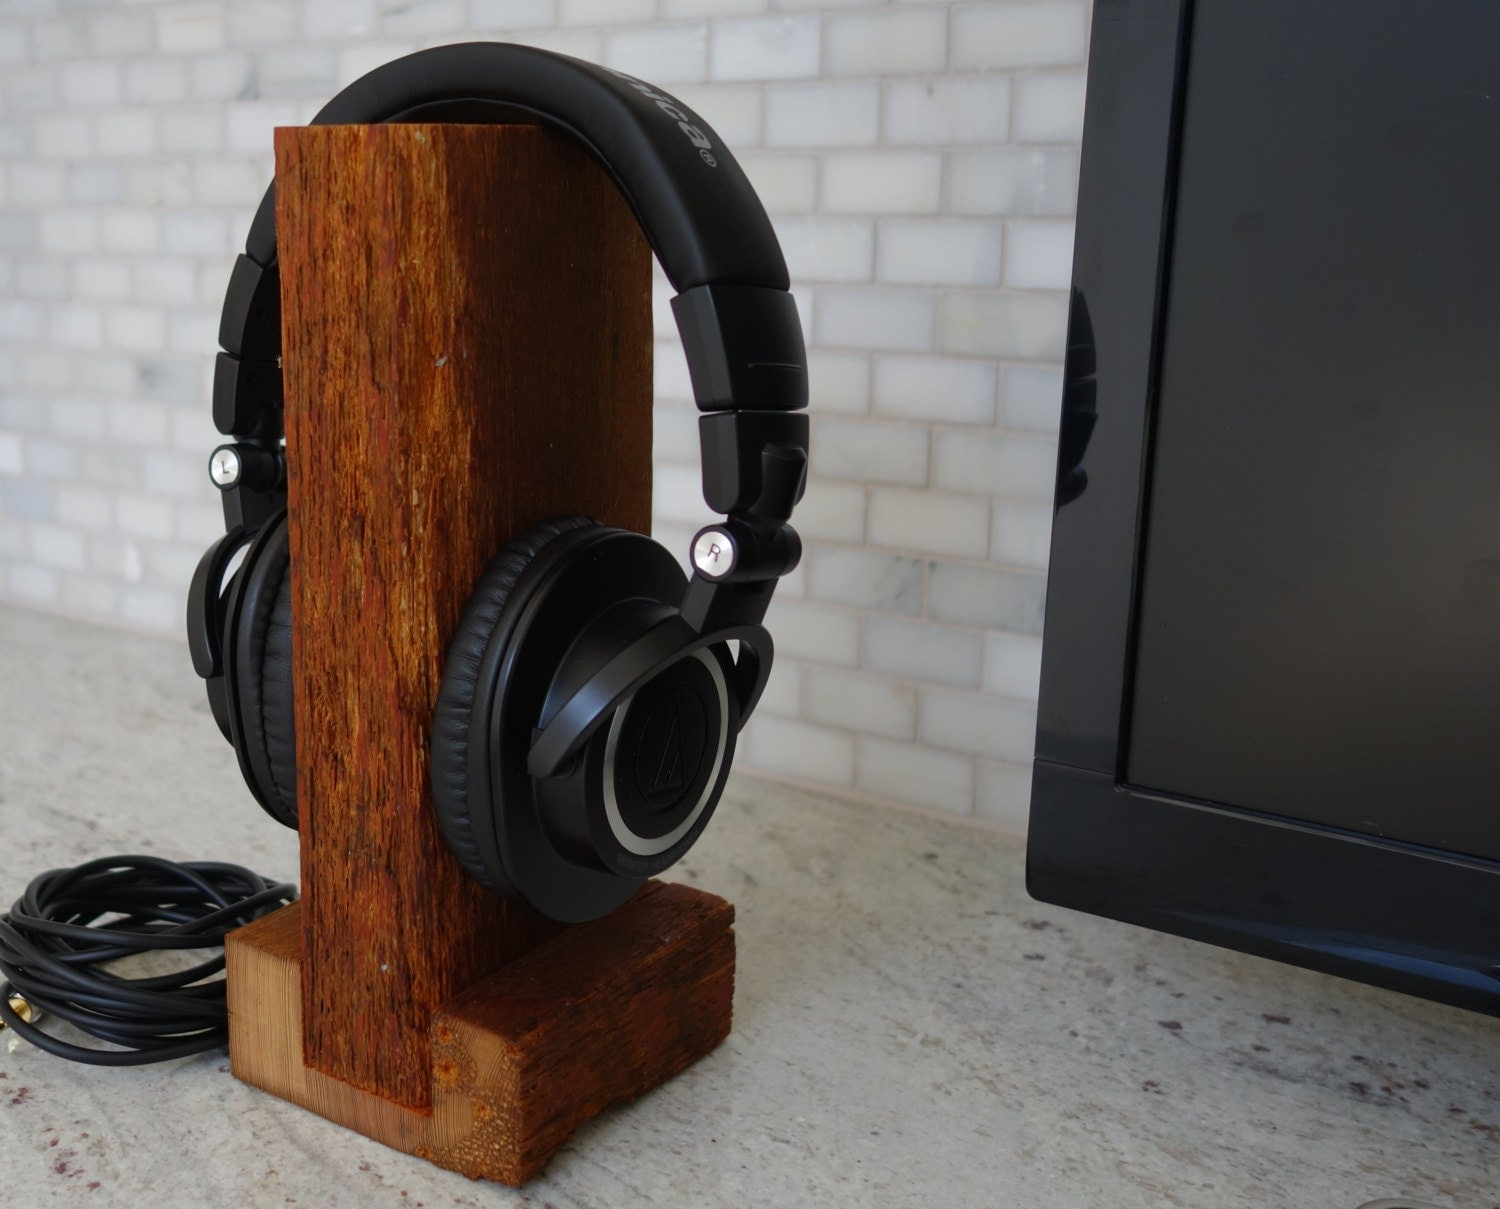 Headphone Stand Designs : Handmade wood headset stand the rustic unique